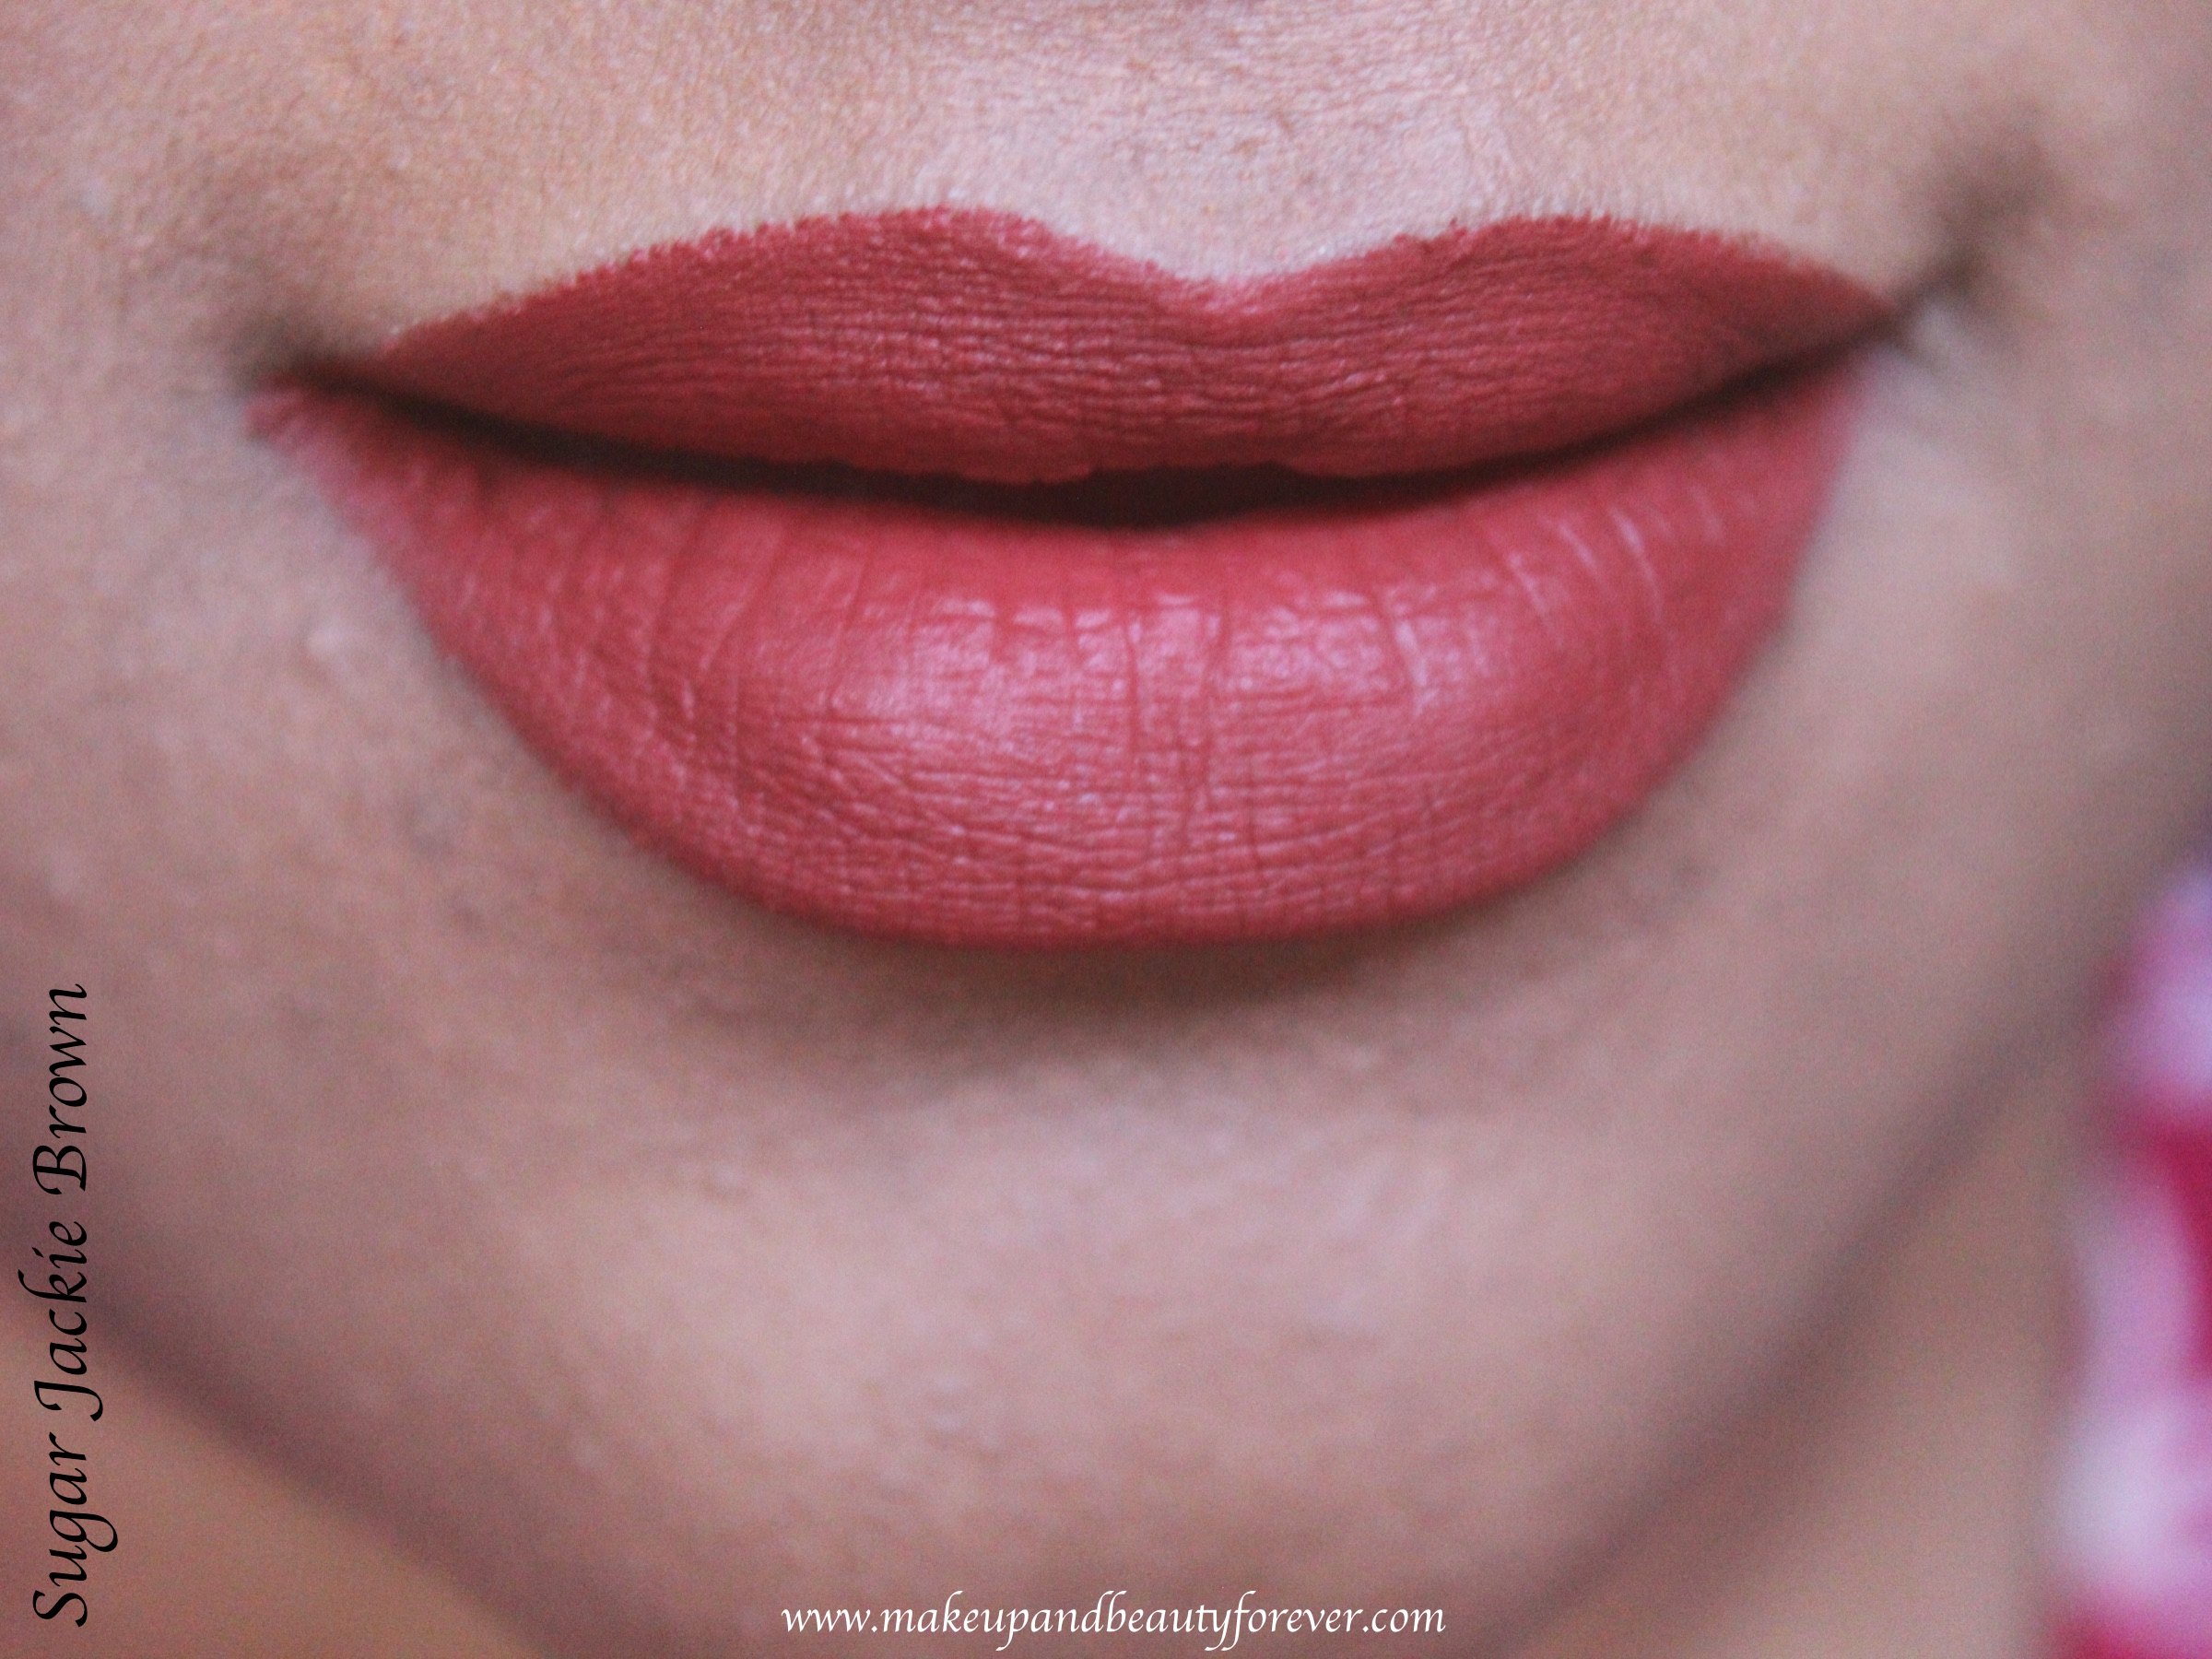 Sugar Jackie Brown 08 Matte As Hell Crayon Lipstick Review